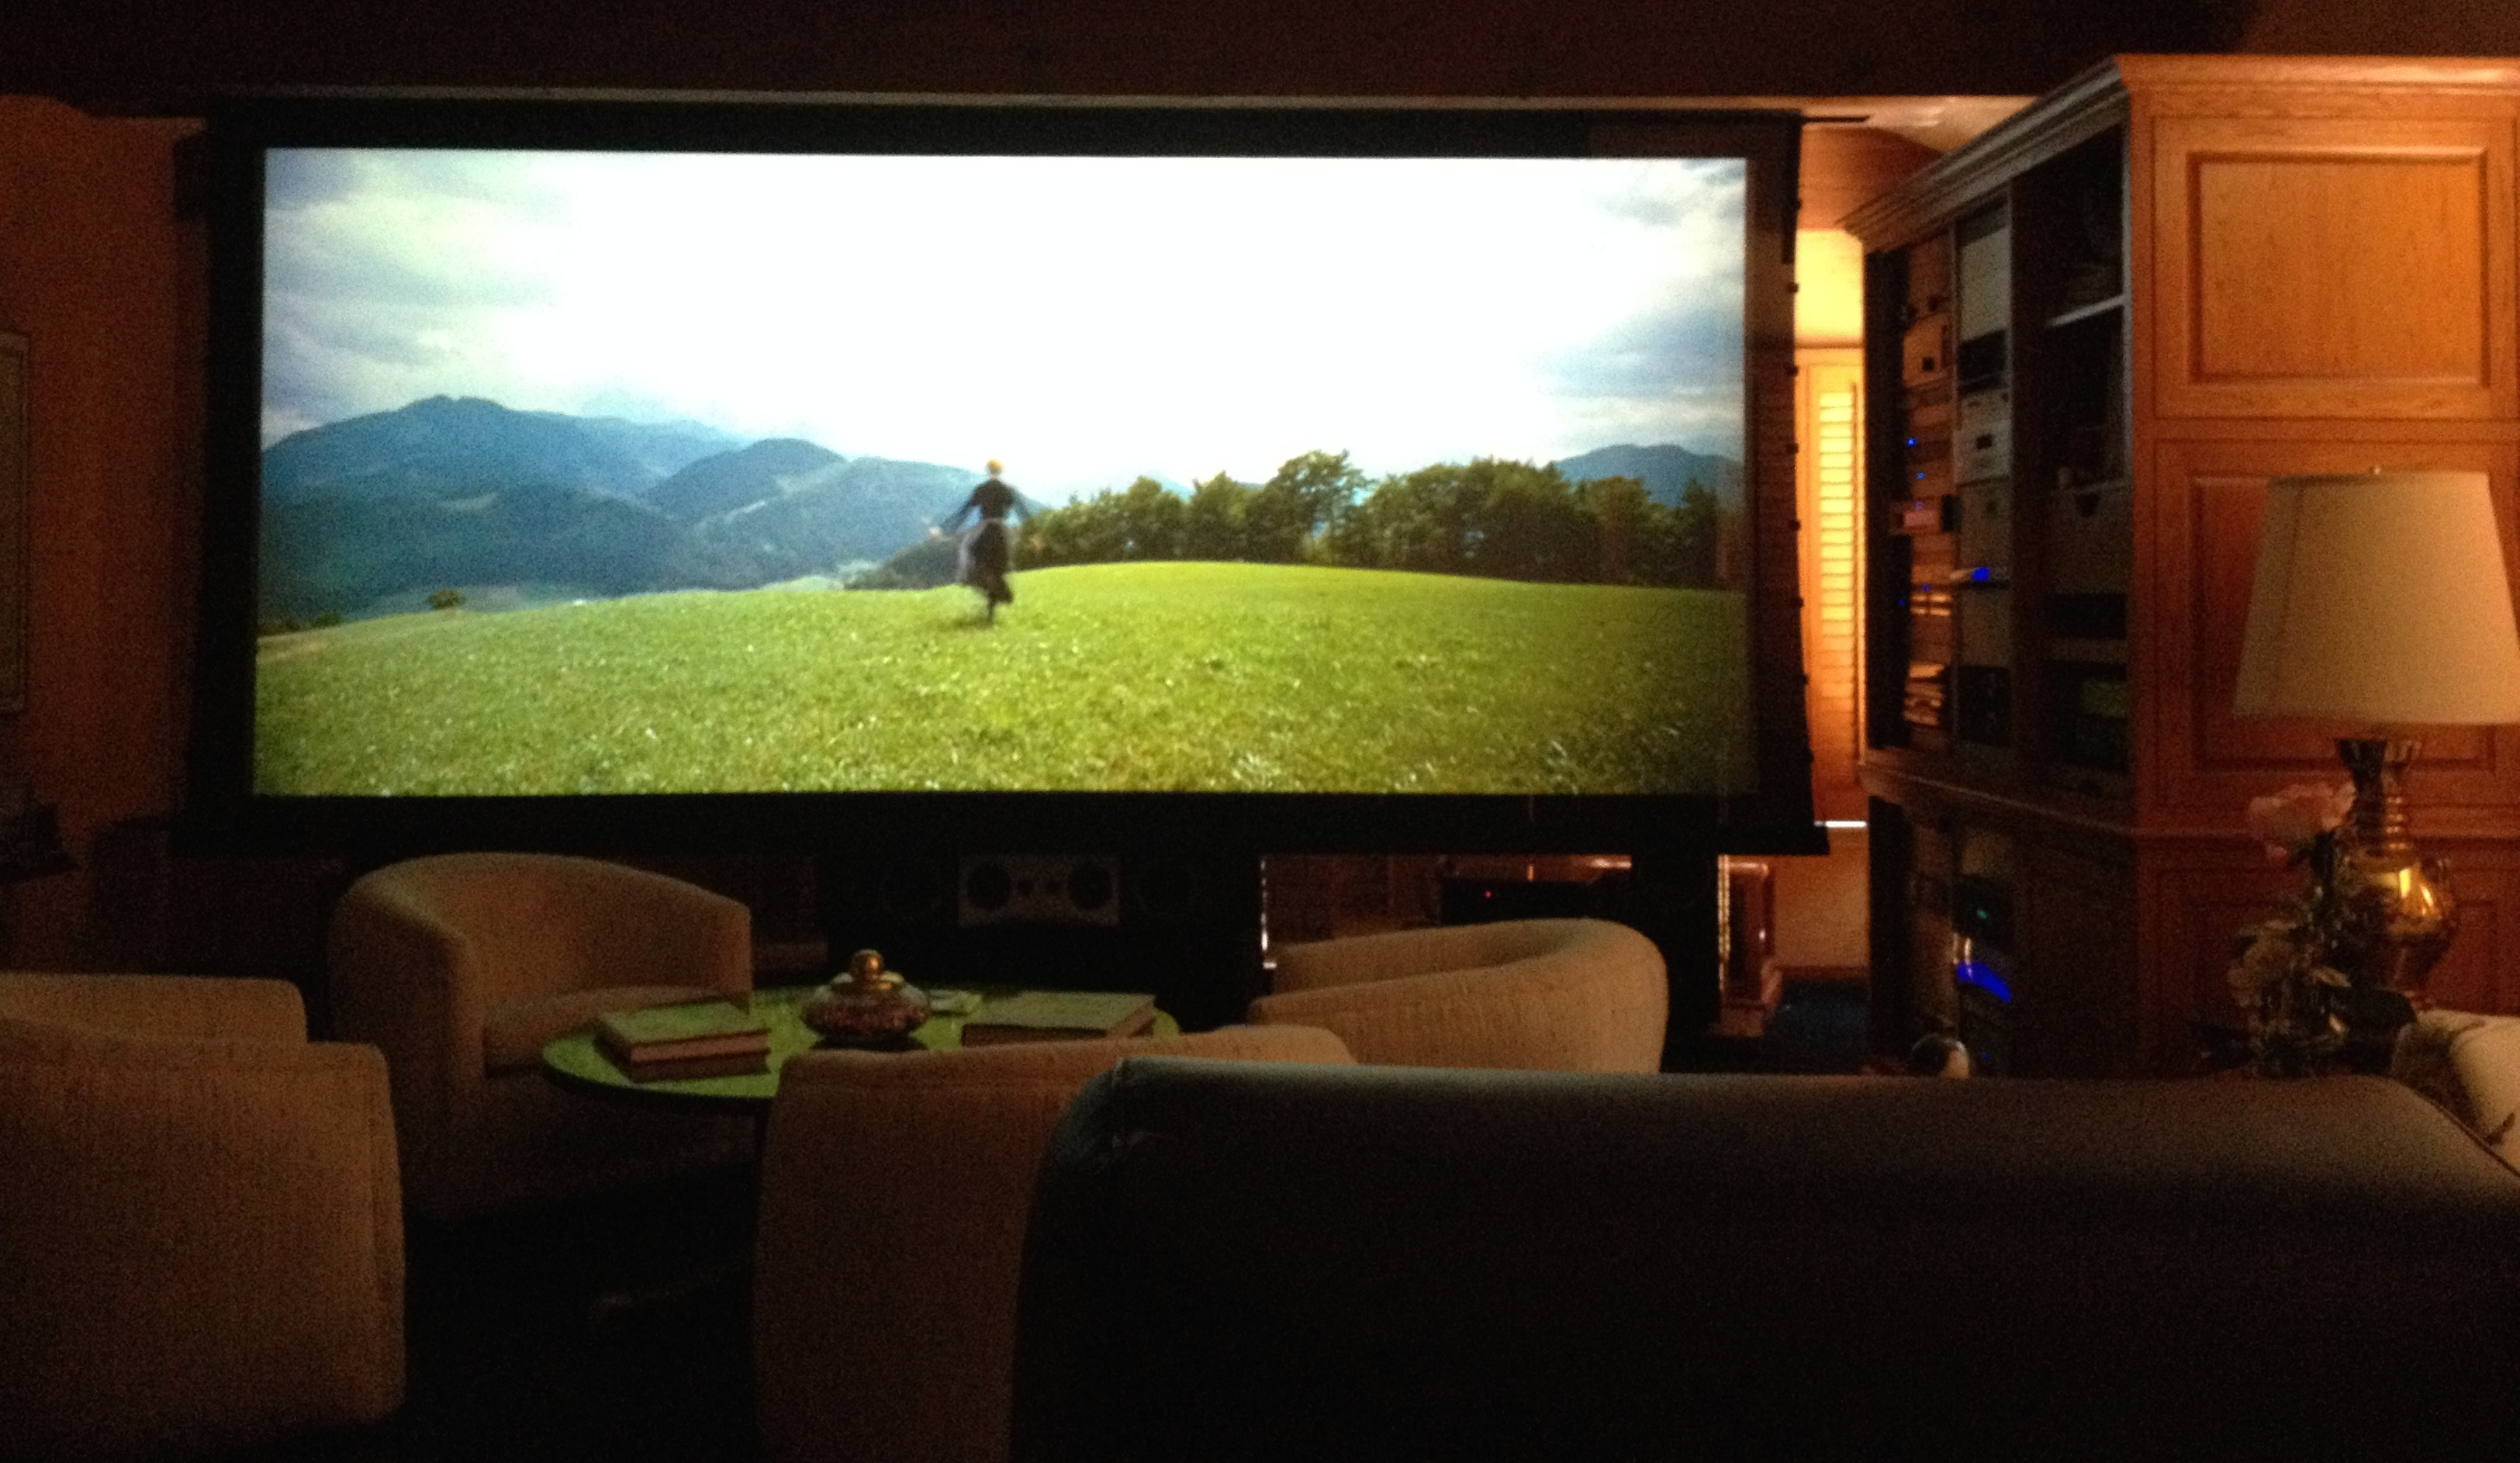 Project home theater system